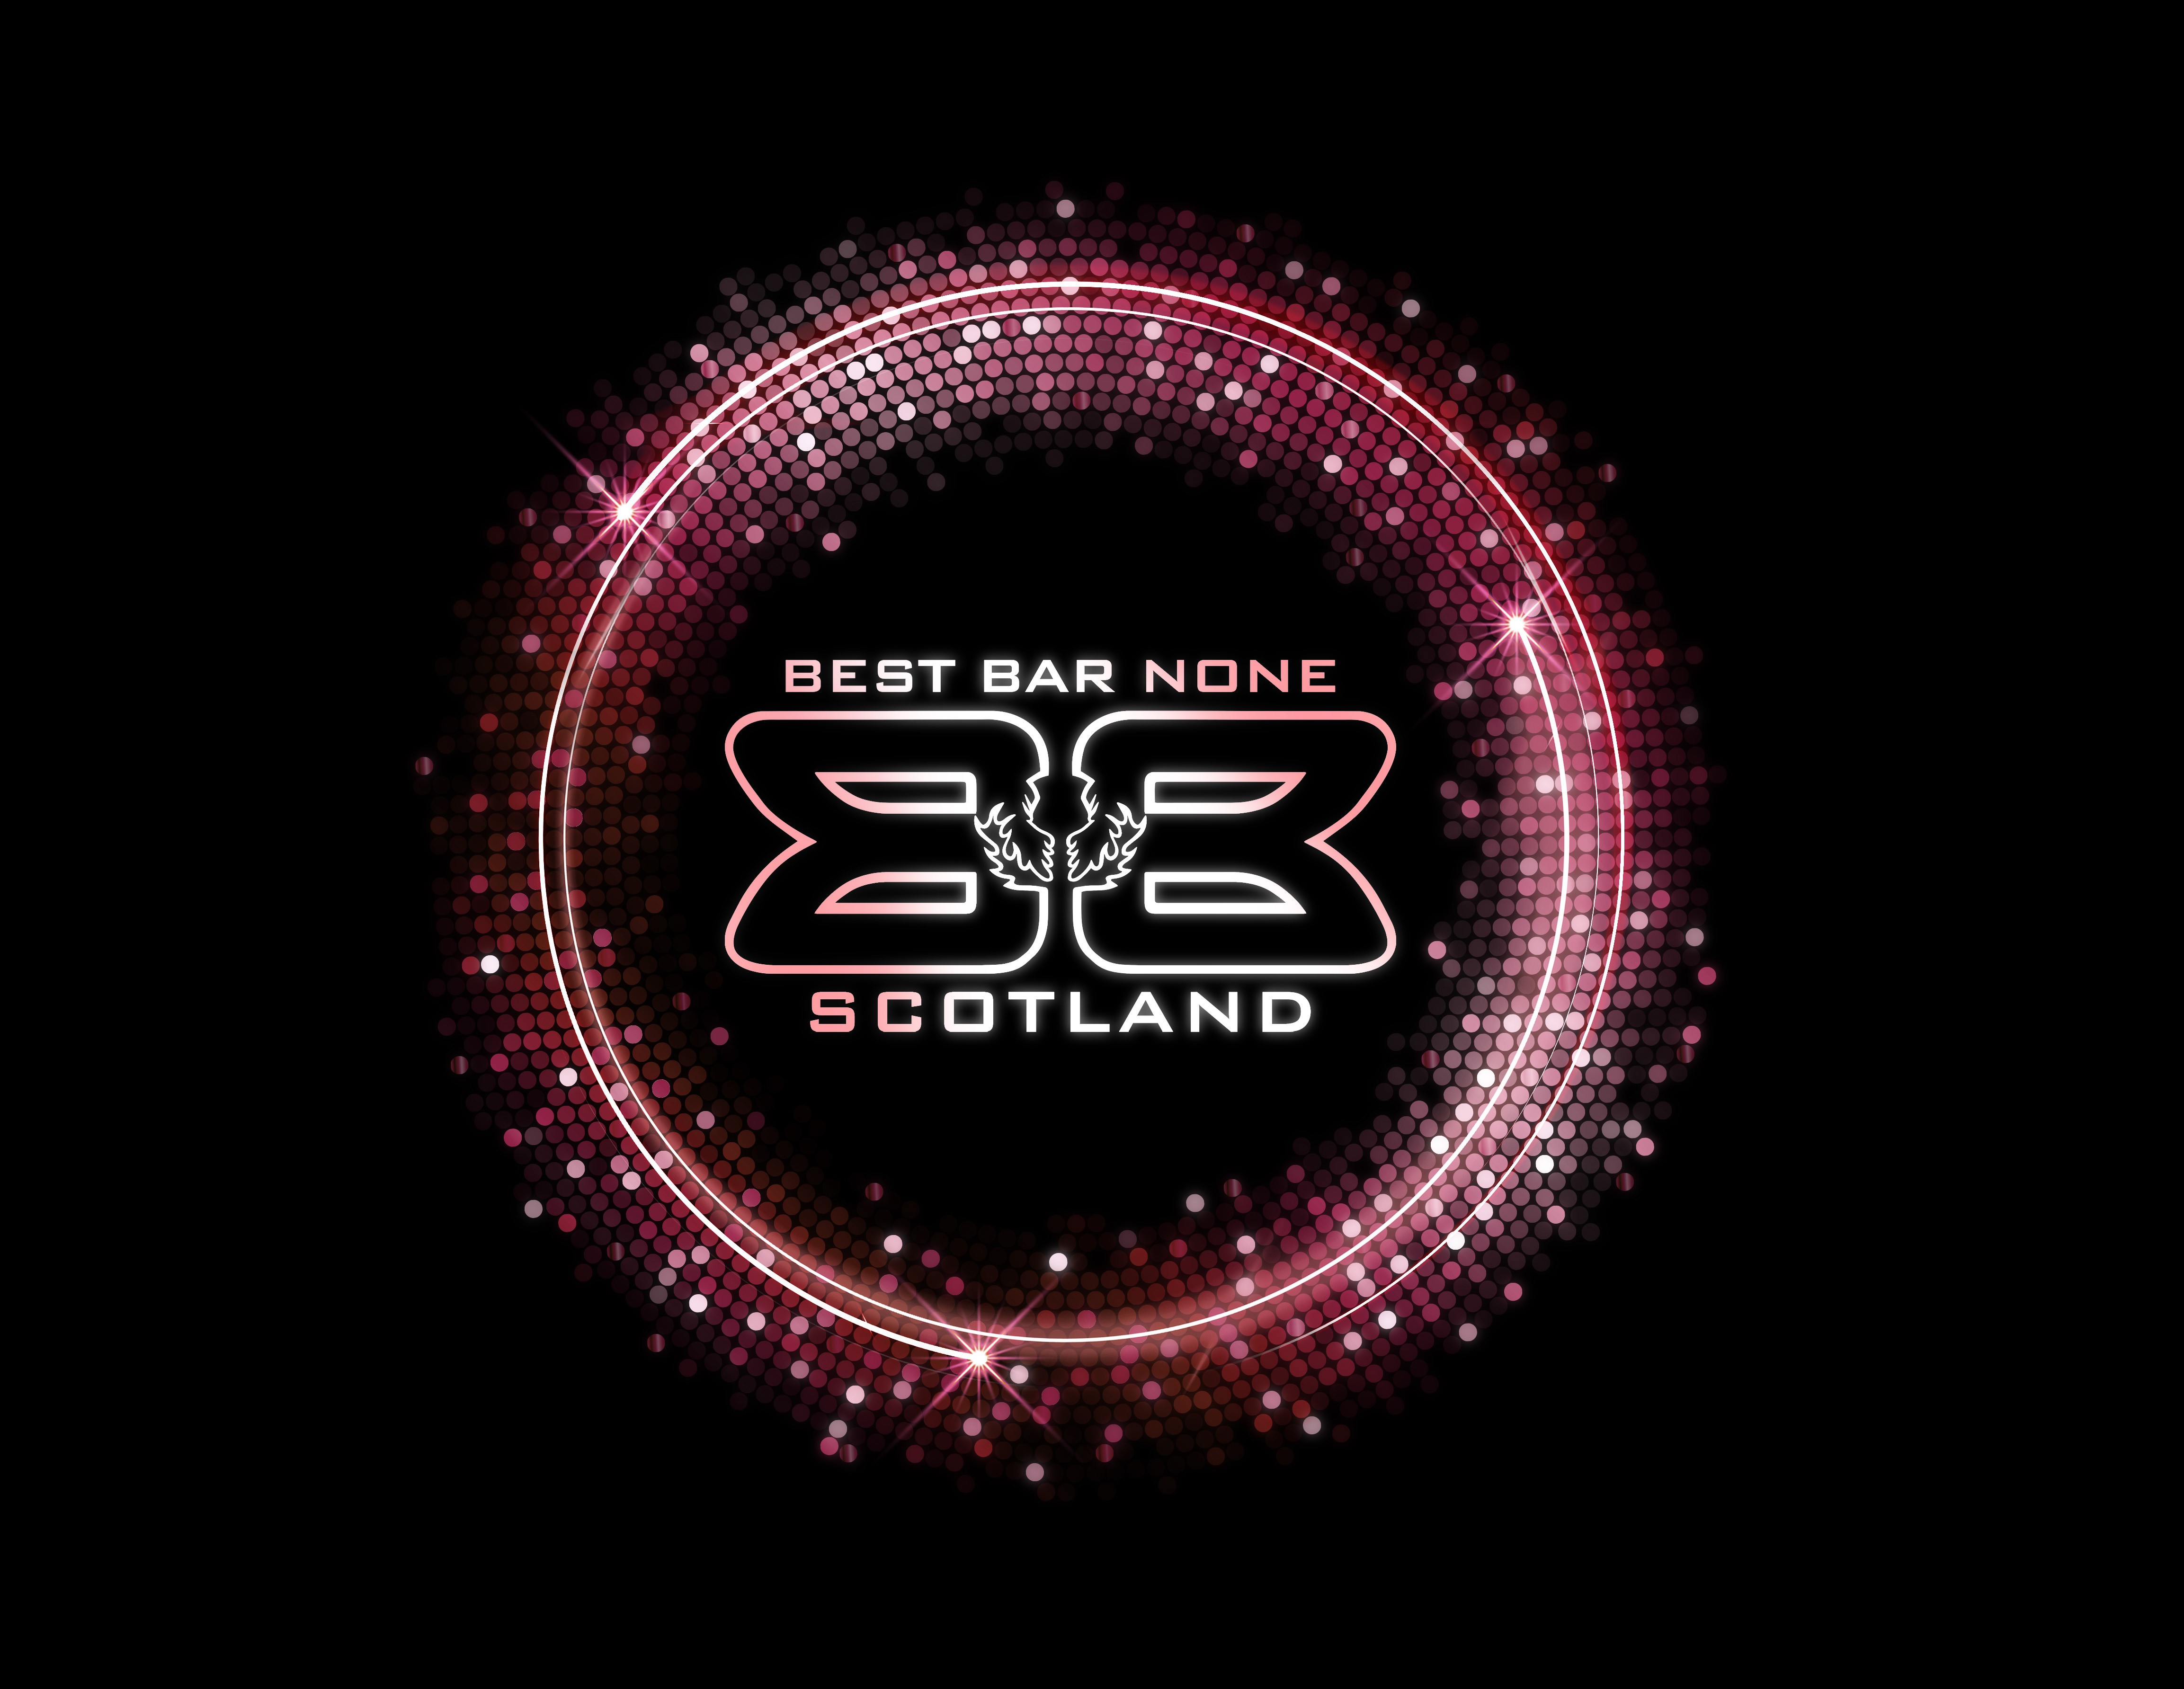 Best Bar None Scotland announce finalists for 2017-18 National Awards